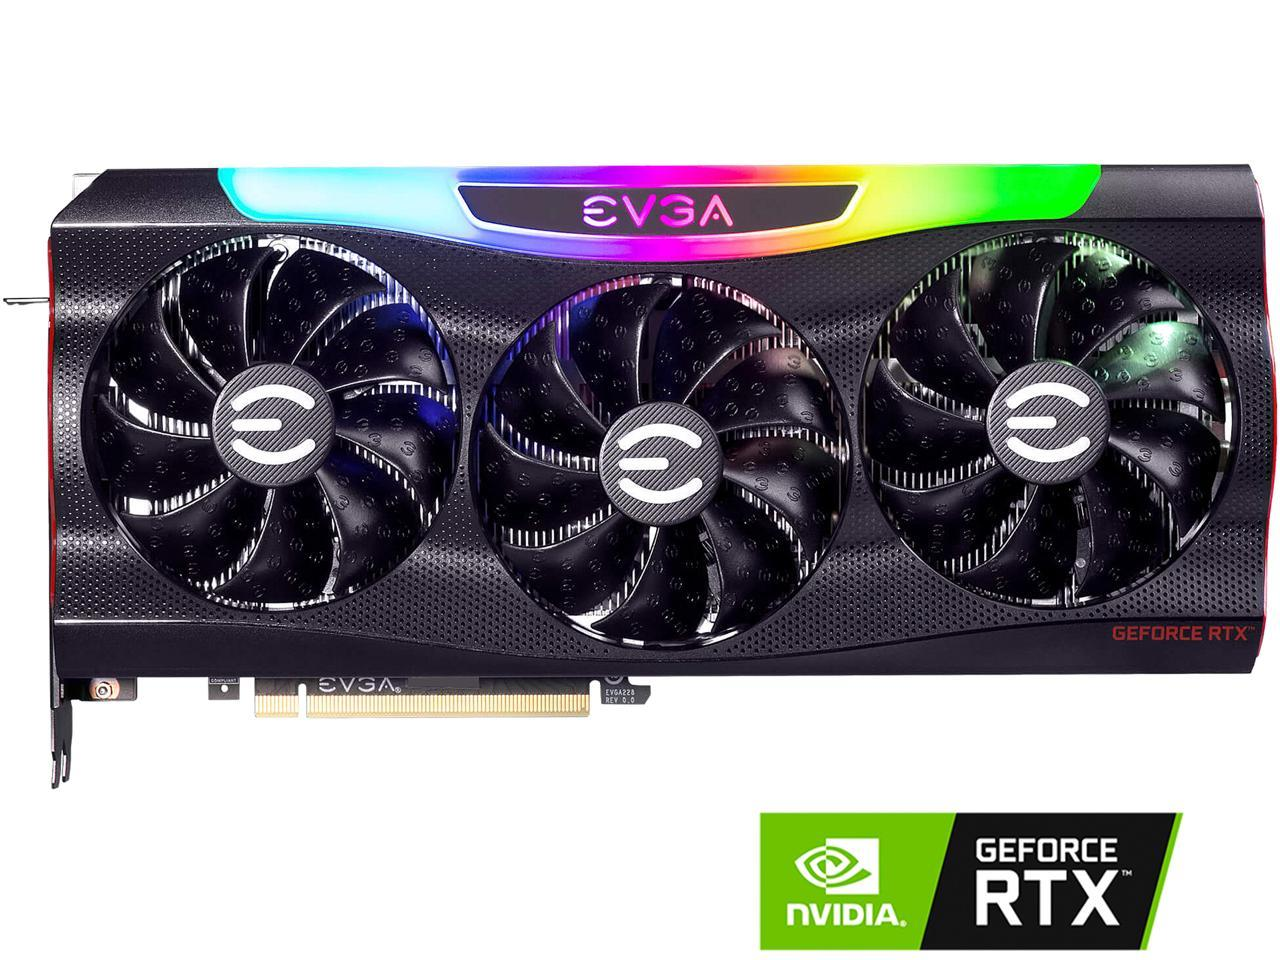 EVGA GeForce RTX 3080 FTW3 ULTRA GAMING + ASUS PRIME B550-PLUS AM4 AMD B550 SATA 6Gb/s ATX AMD Motherboard + 80mm Fractal SSR3 Fan Bundle